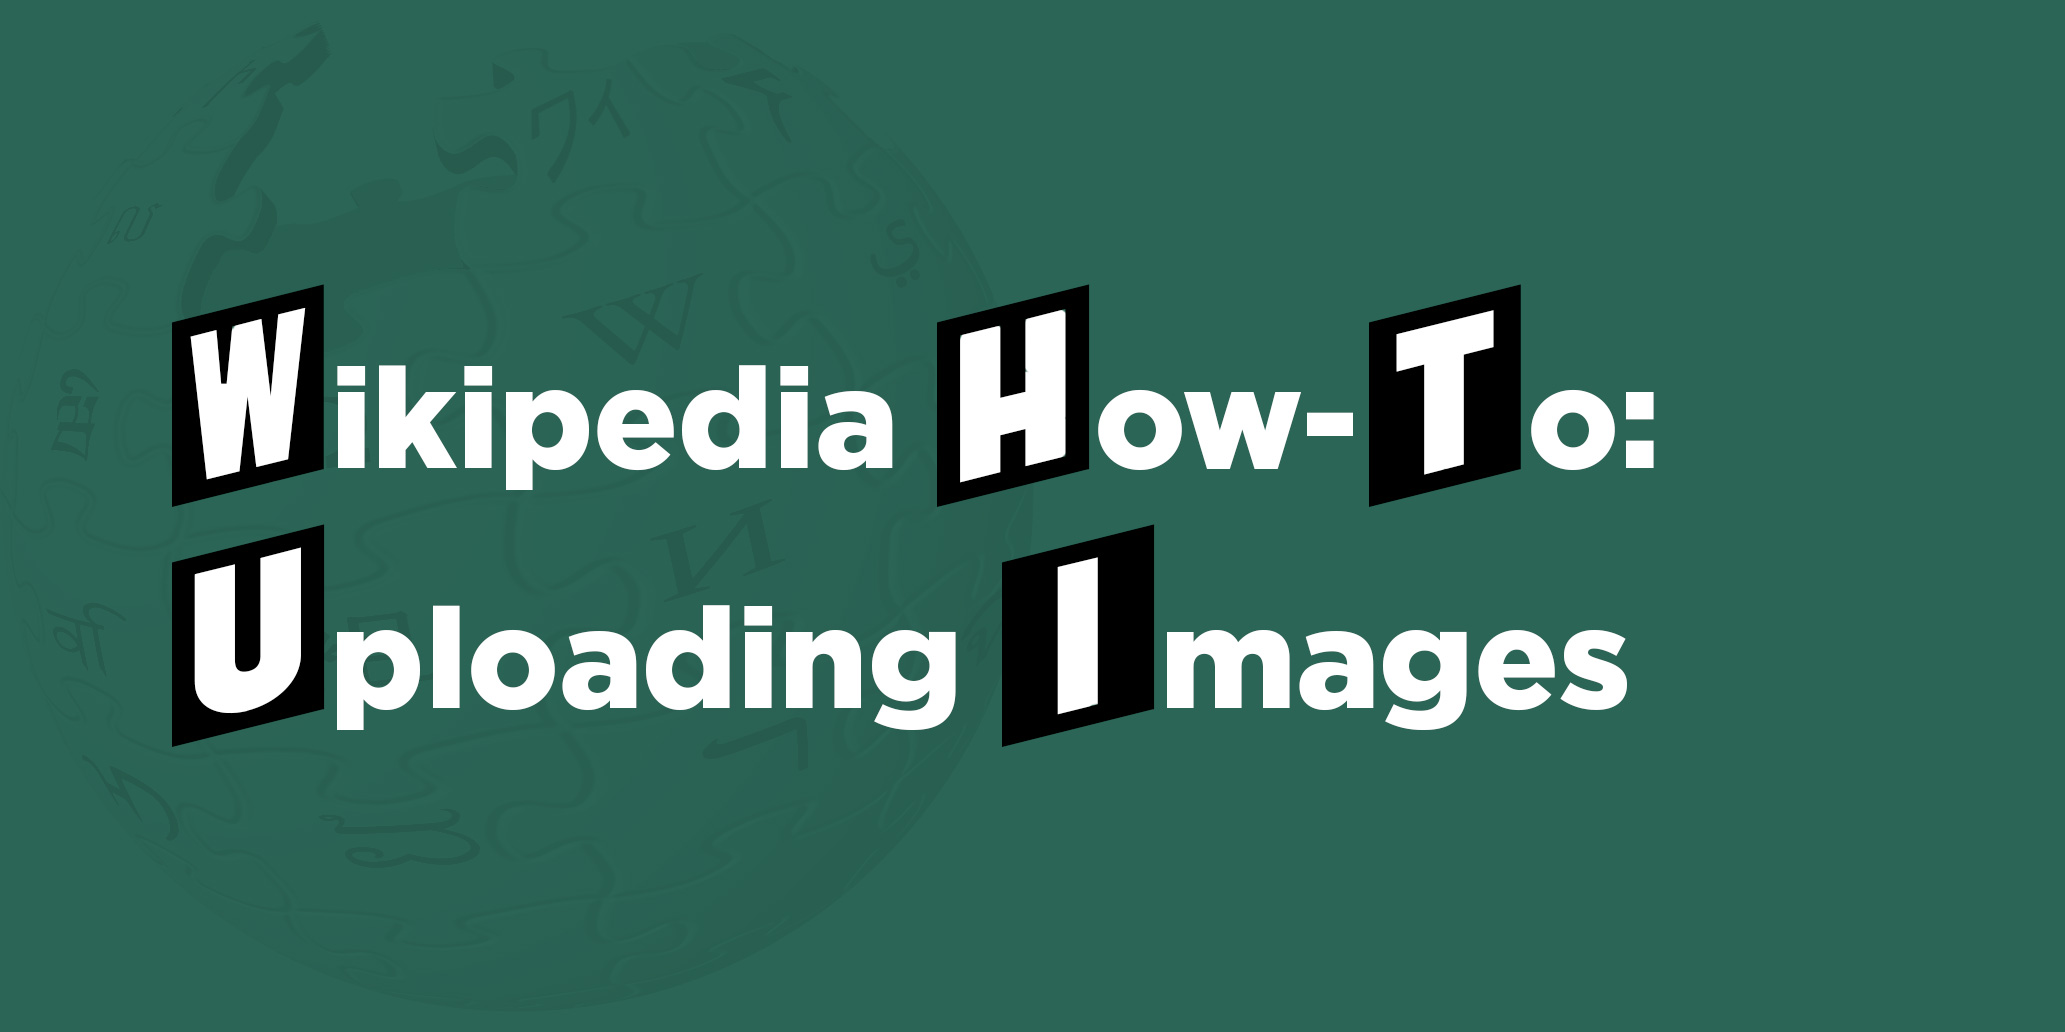 Wikipedia How-To: Uploading Images